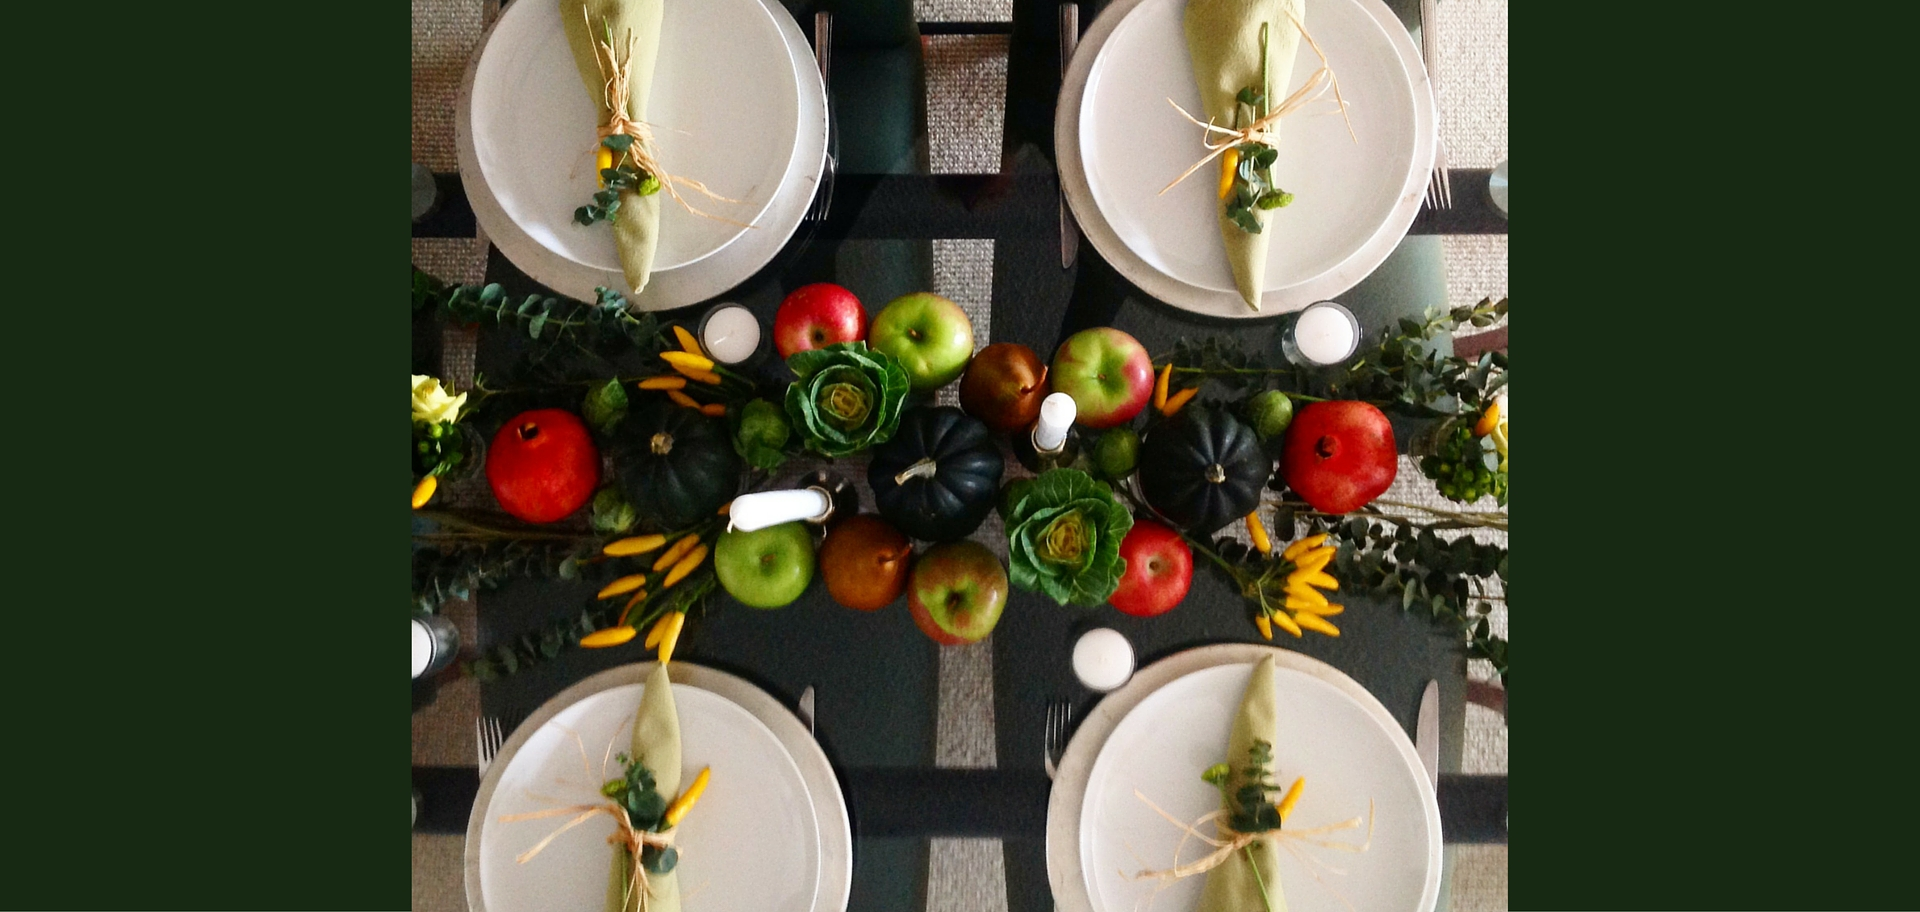 Eco-friendly Table Settings for Thanksgiving